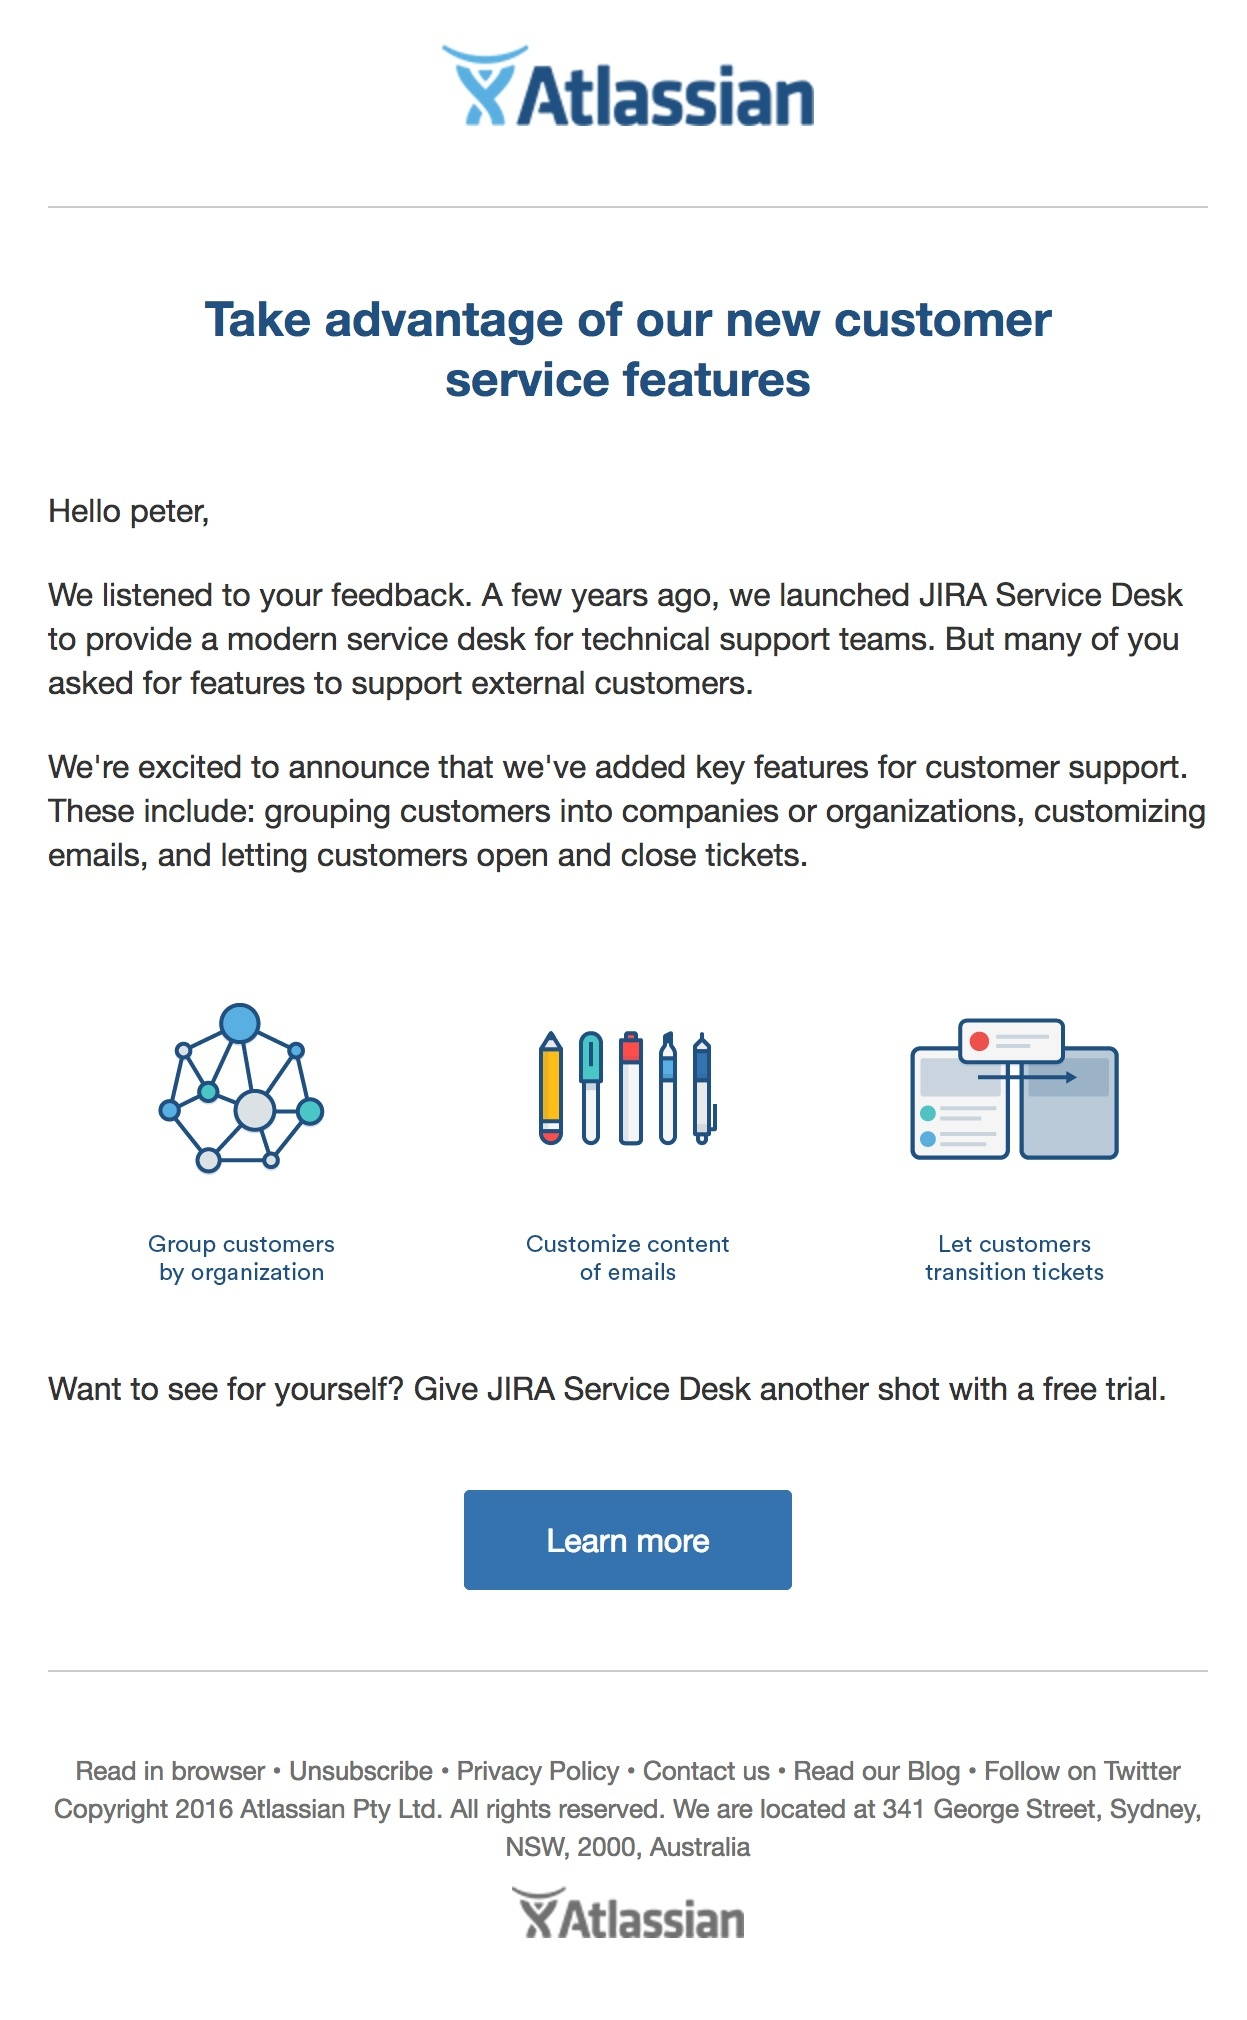 Atlassian tells users how it's serving them